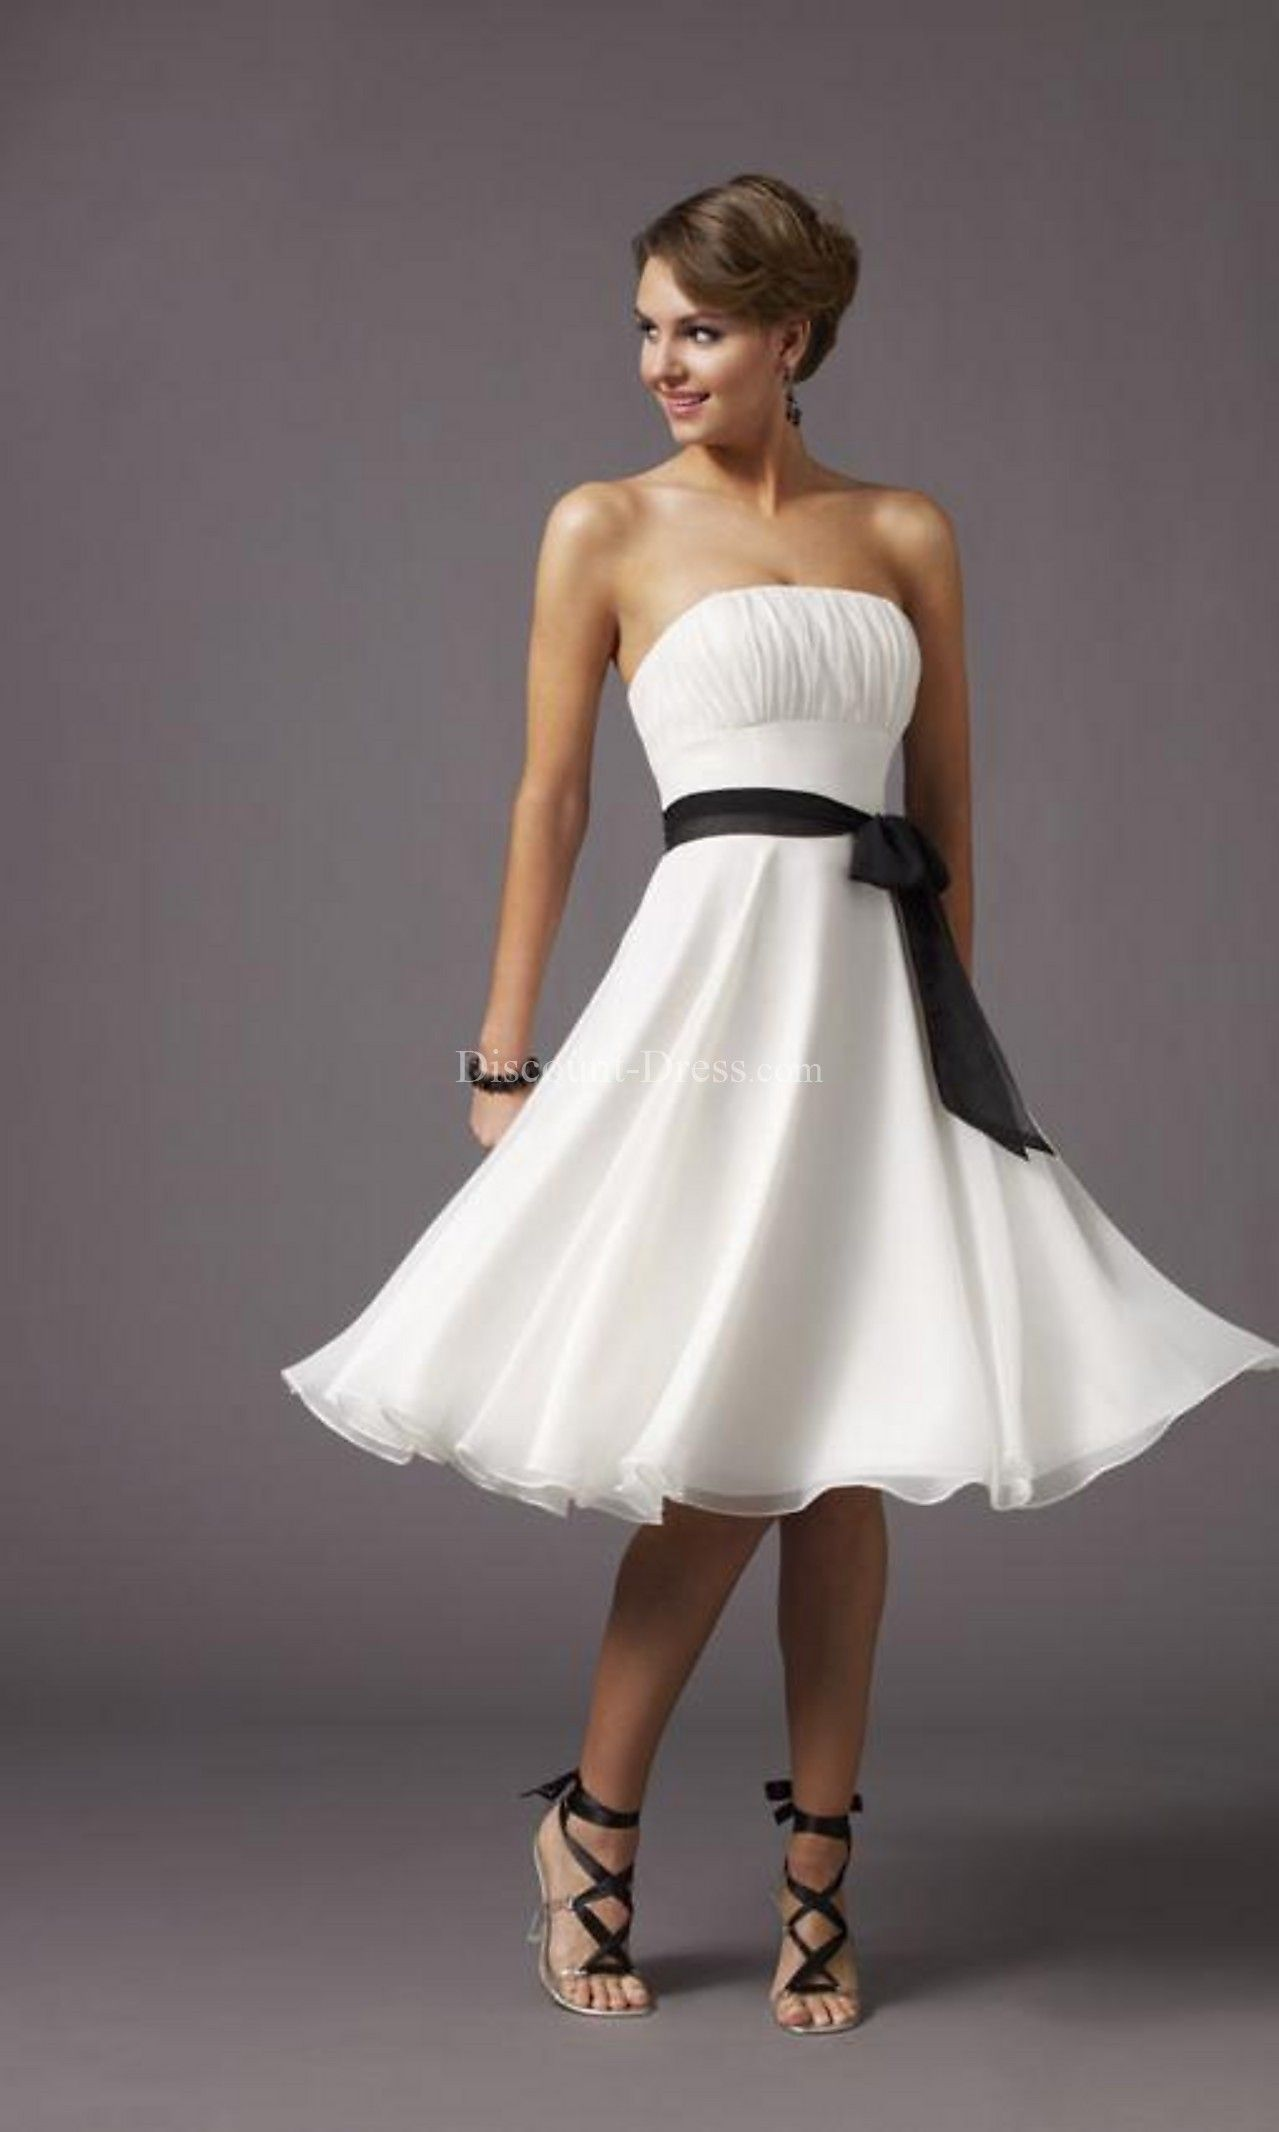 Strapless knee length prom dress style dress up pinterest